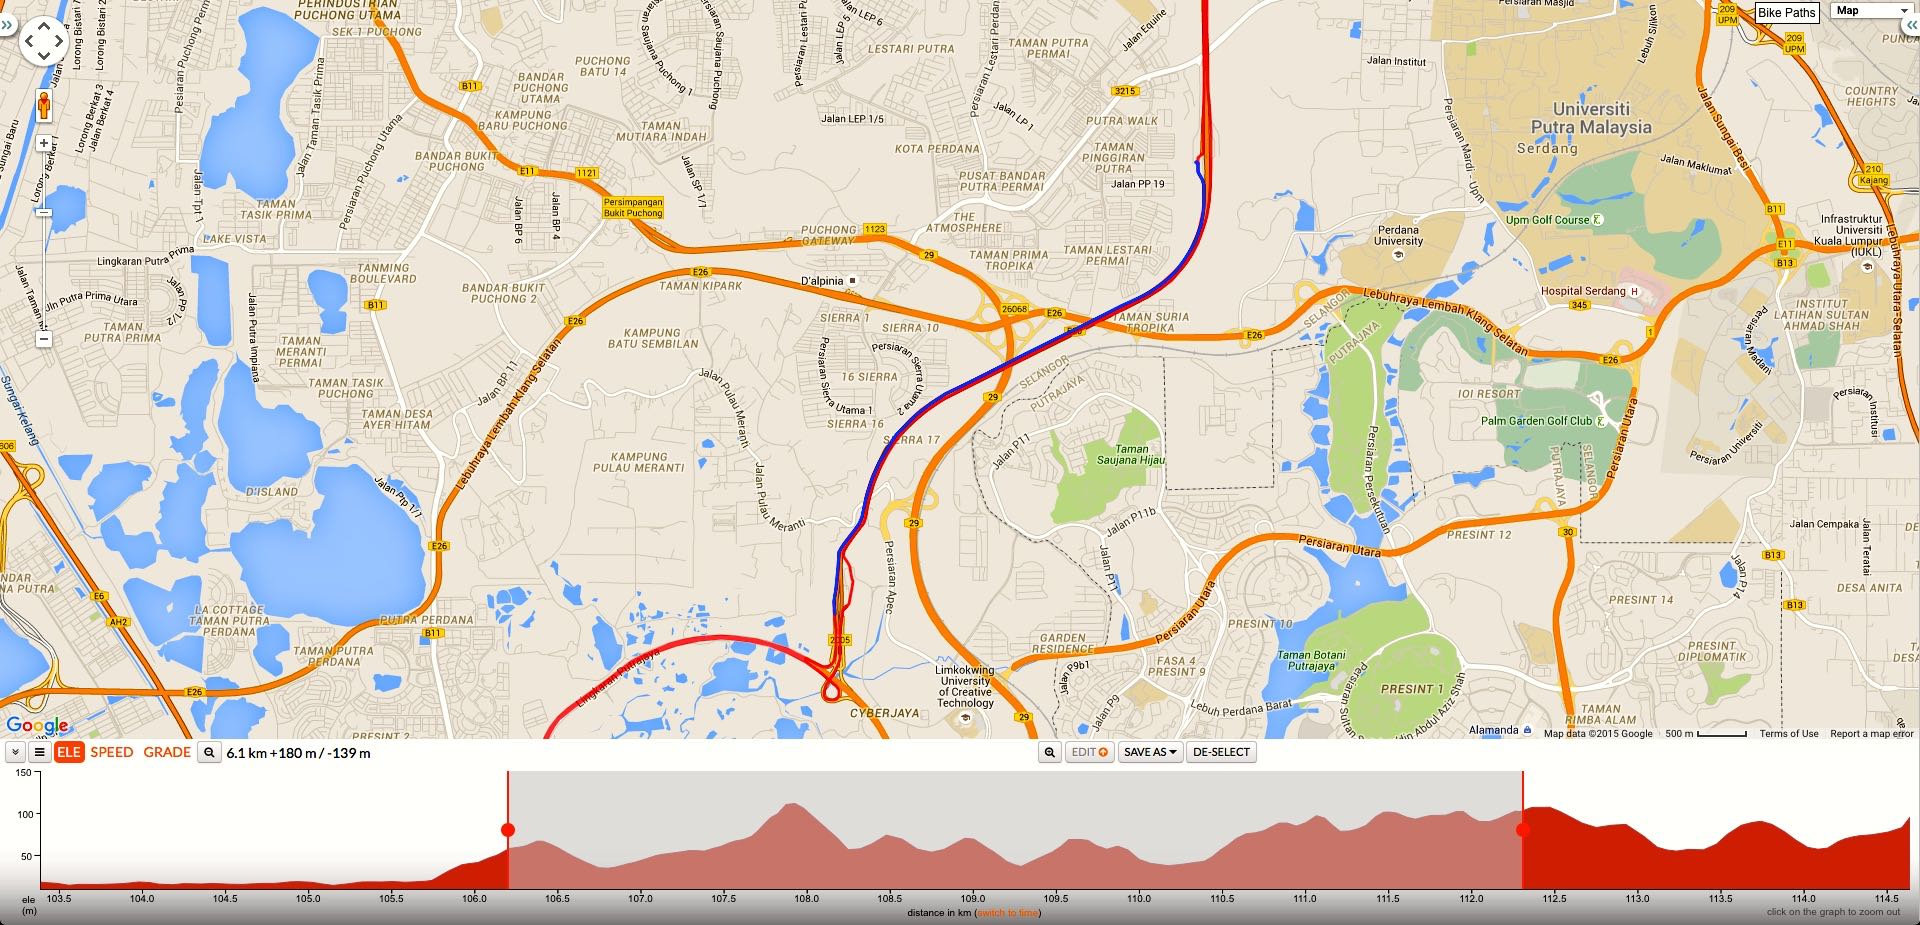 Map courtesy of Ride With GPS